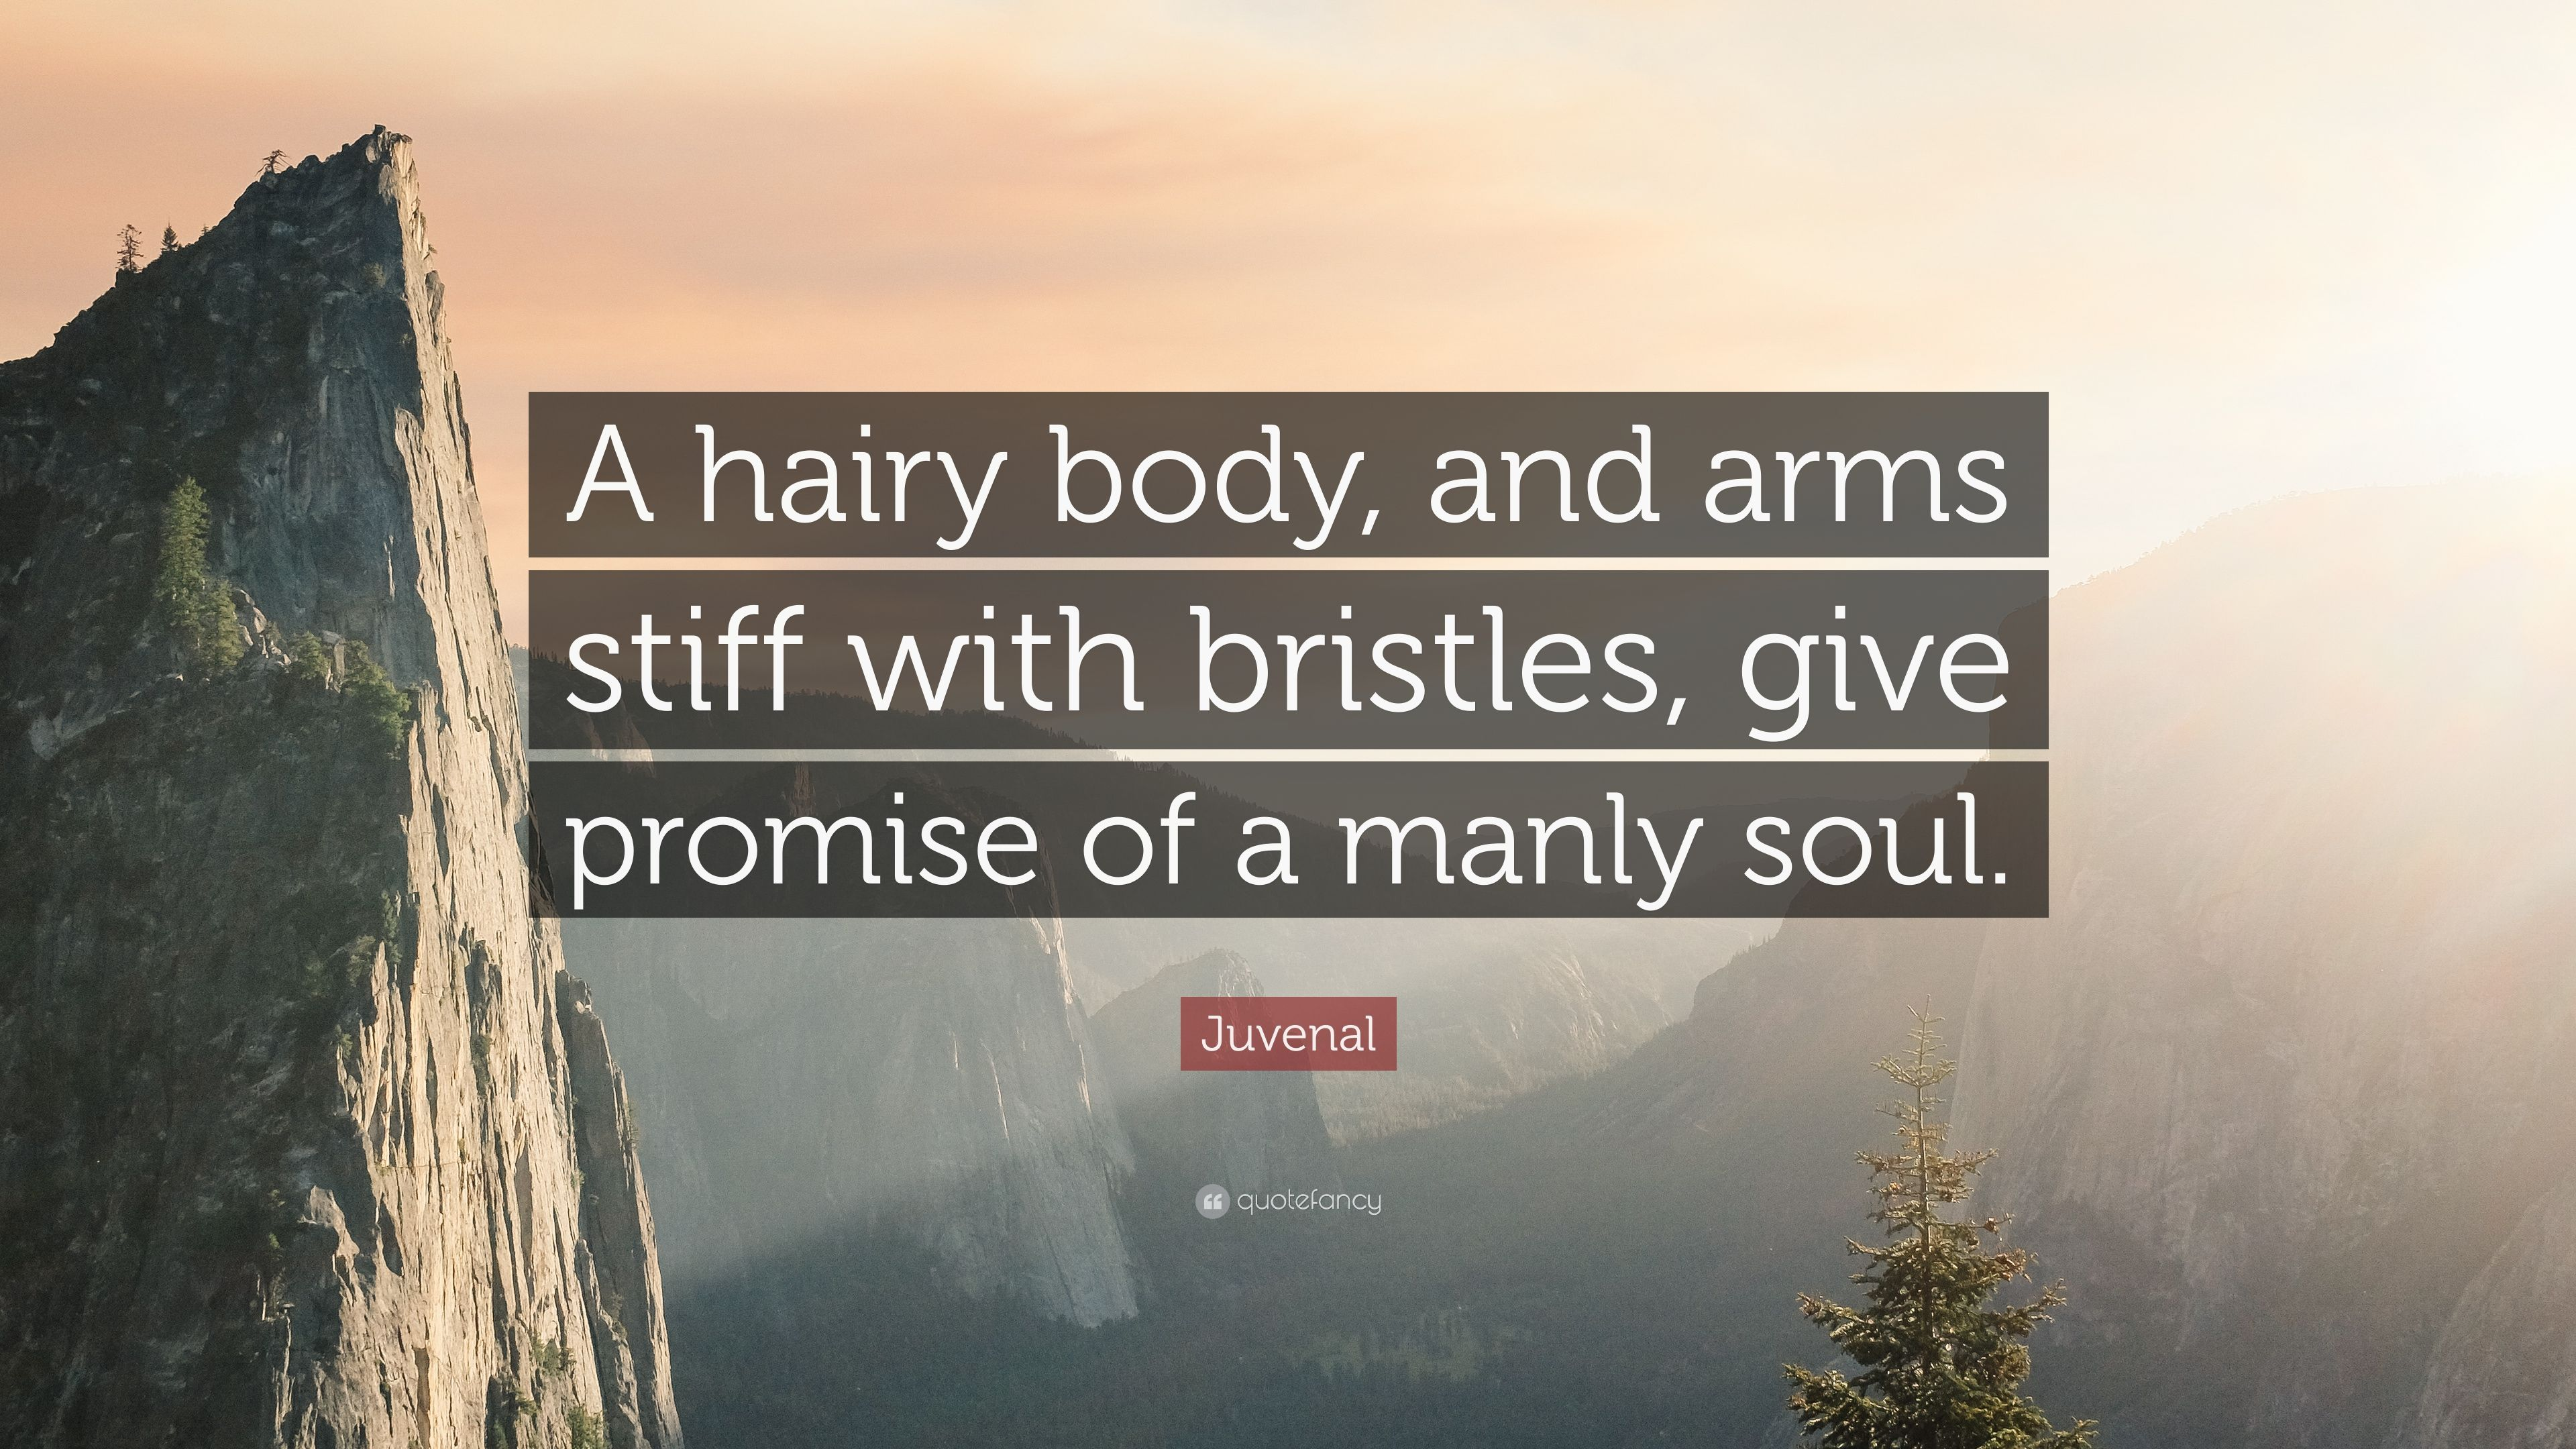 Hairy star astronomer quote